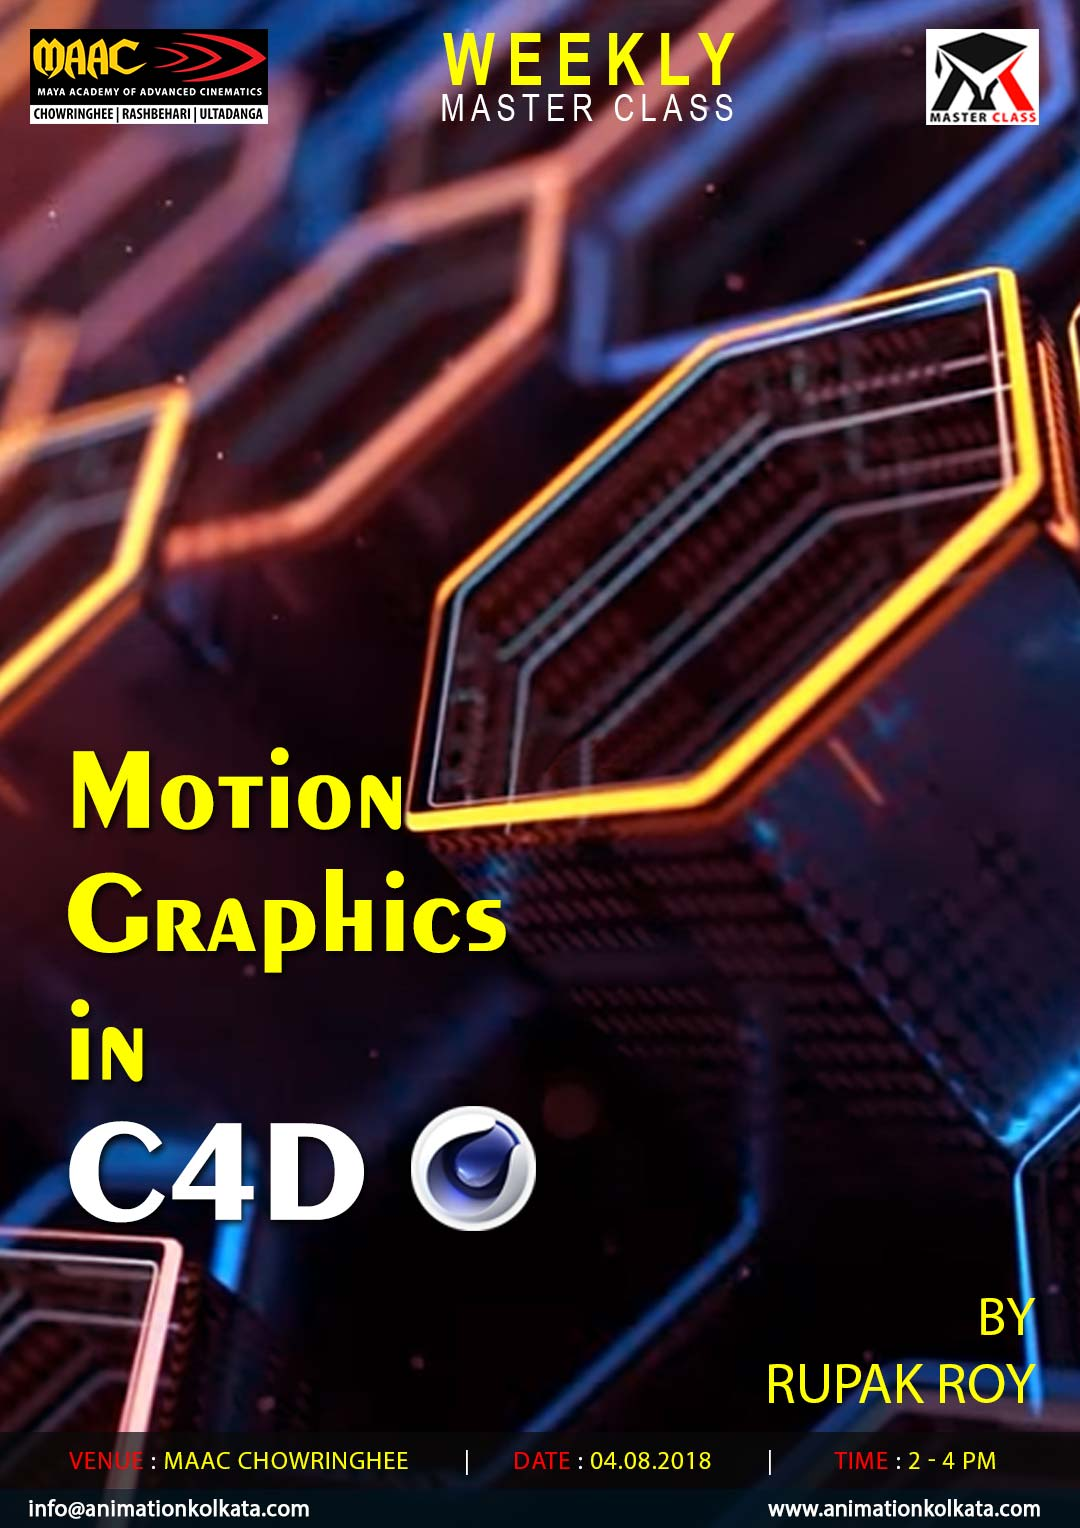 Weekly Master Class on Motion Graphics in C4D